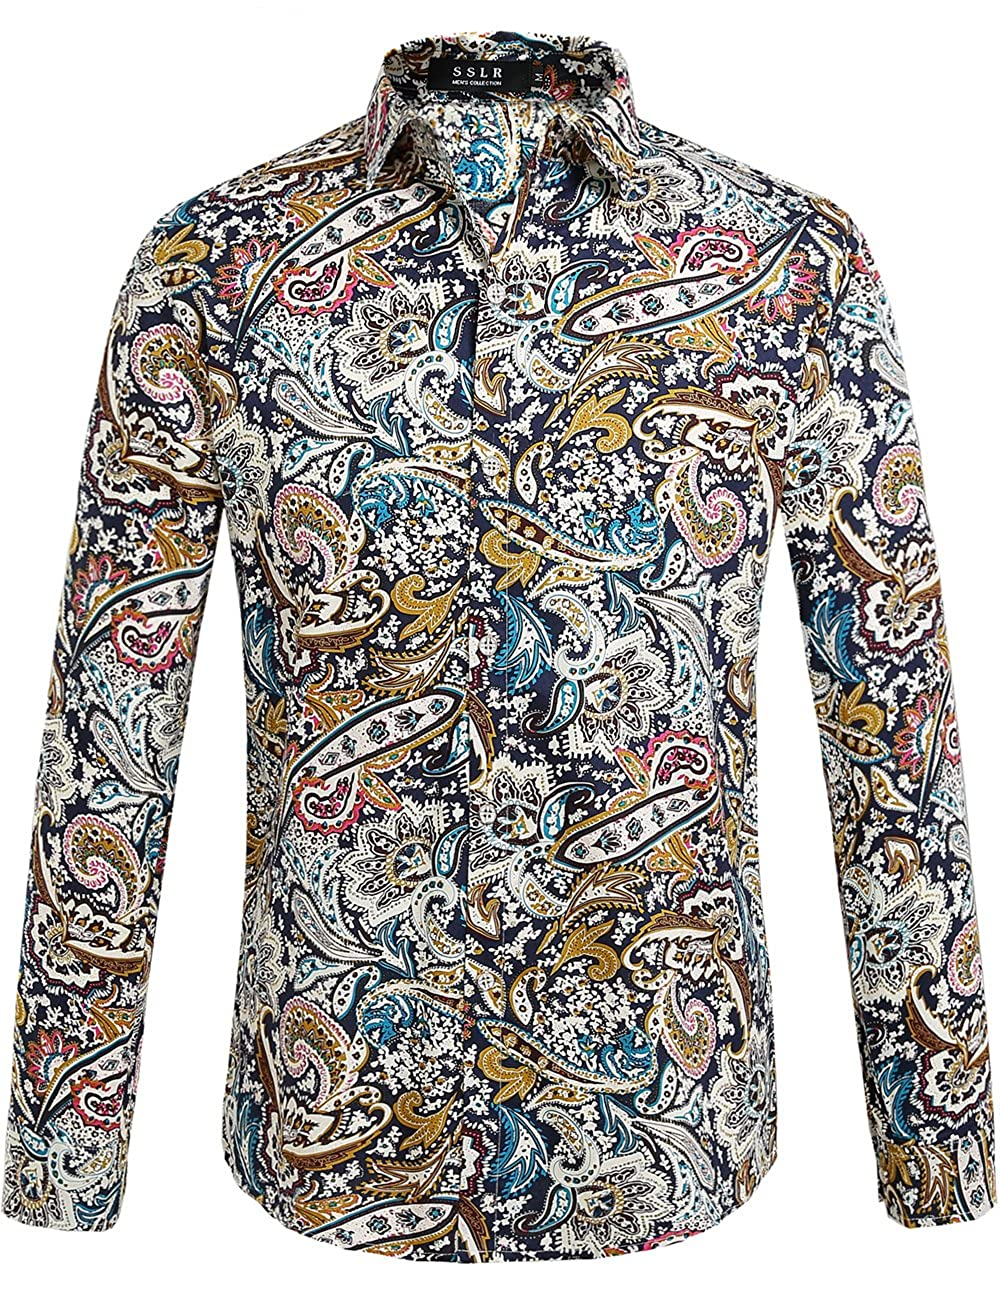 1960s – 70s Mens Shirts- Disco Shirts, Hippie Shirts SSLR Mens Paisley Cotton Casual Button Down Long Sleeve Shirt �26.42 AT vintagedancer.com